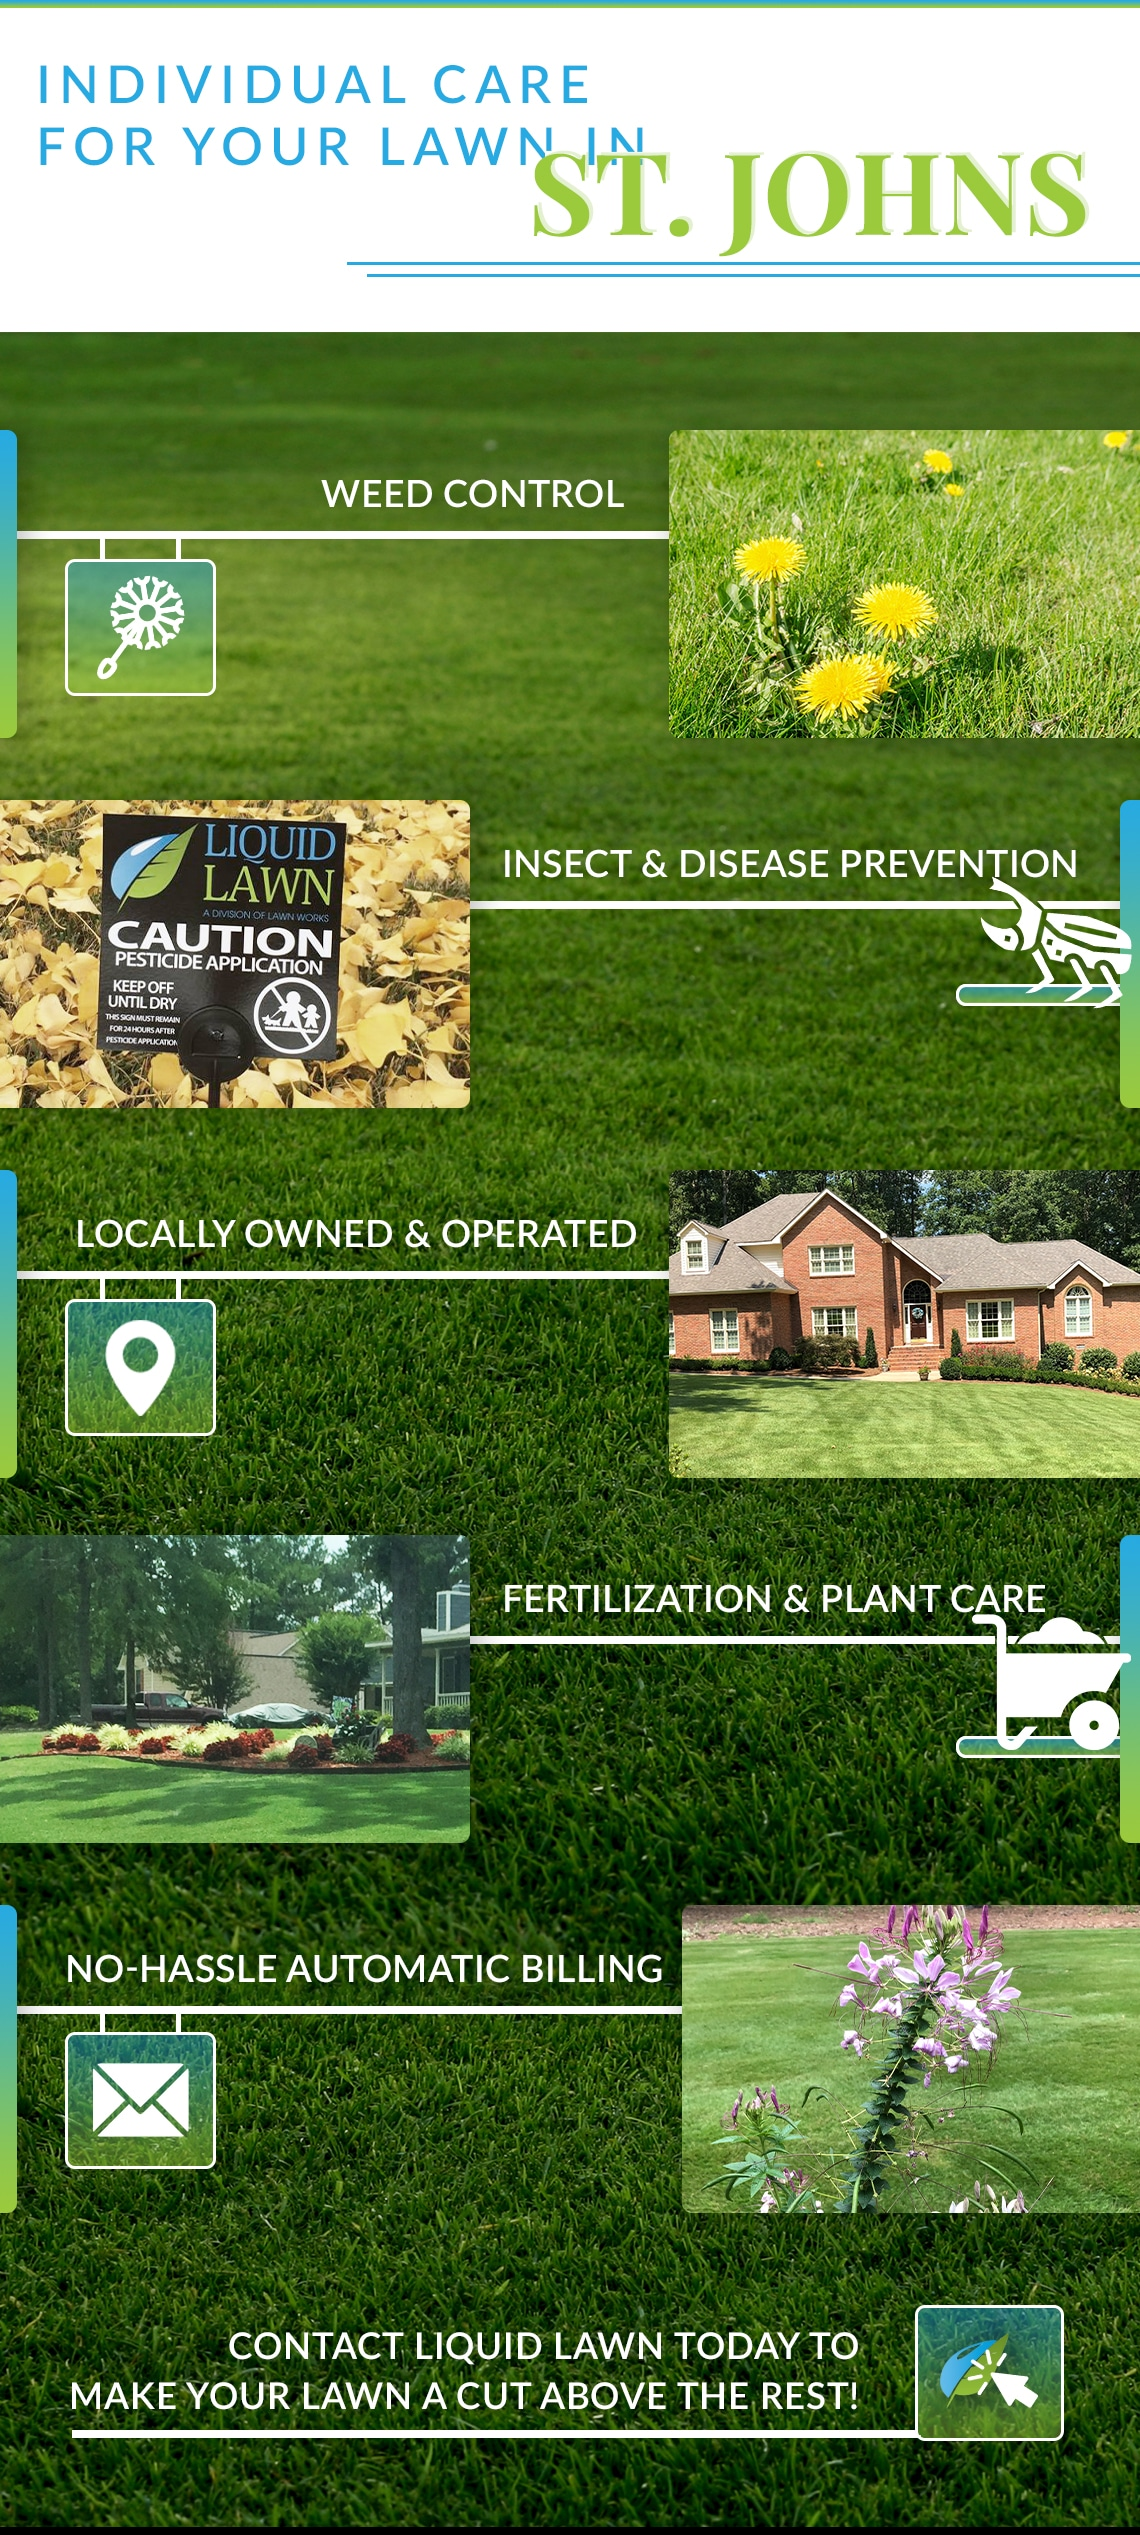 2ST Johns Lawn Care